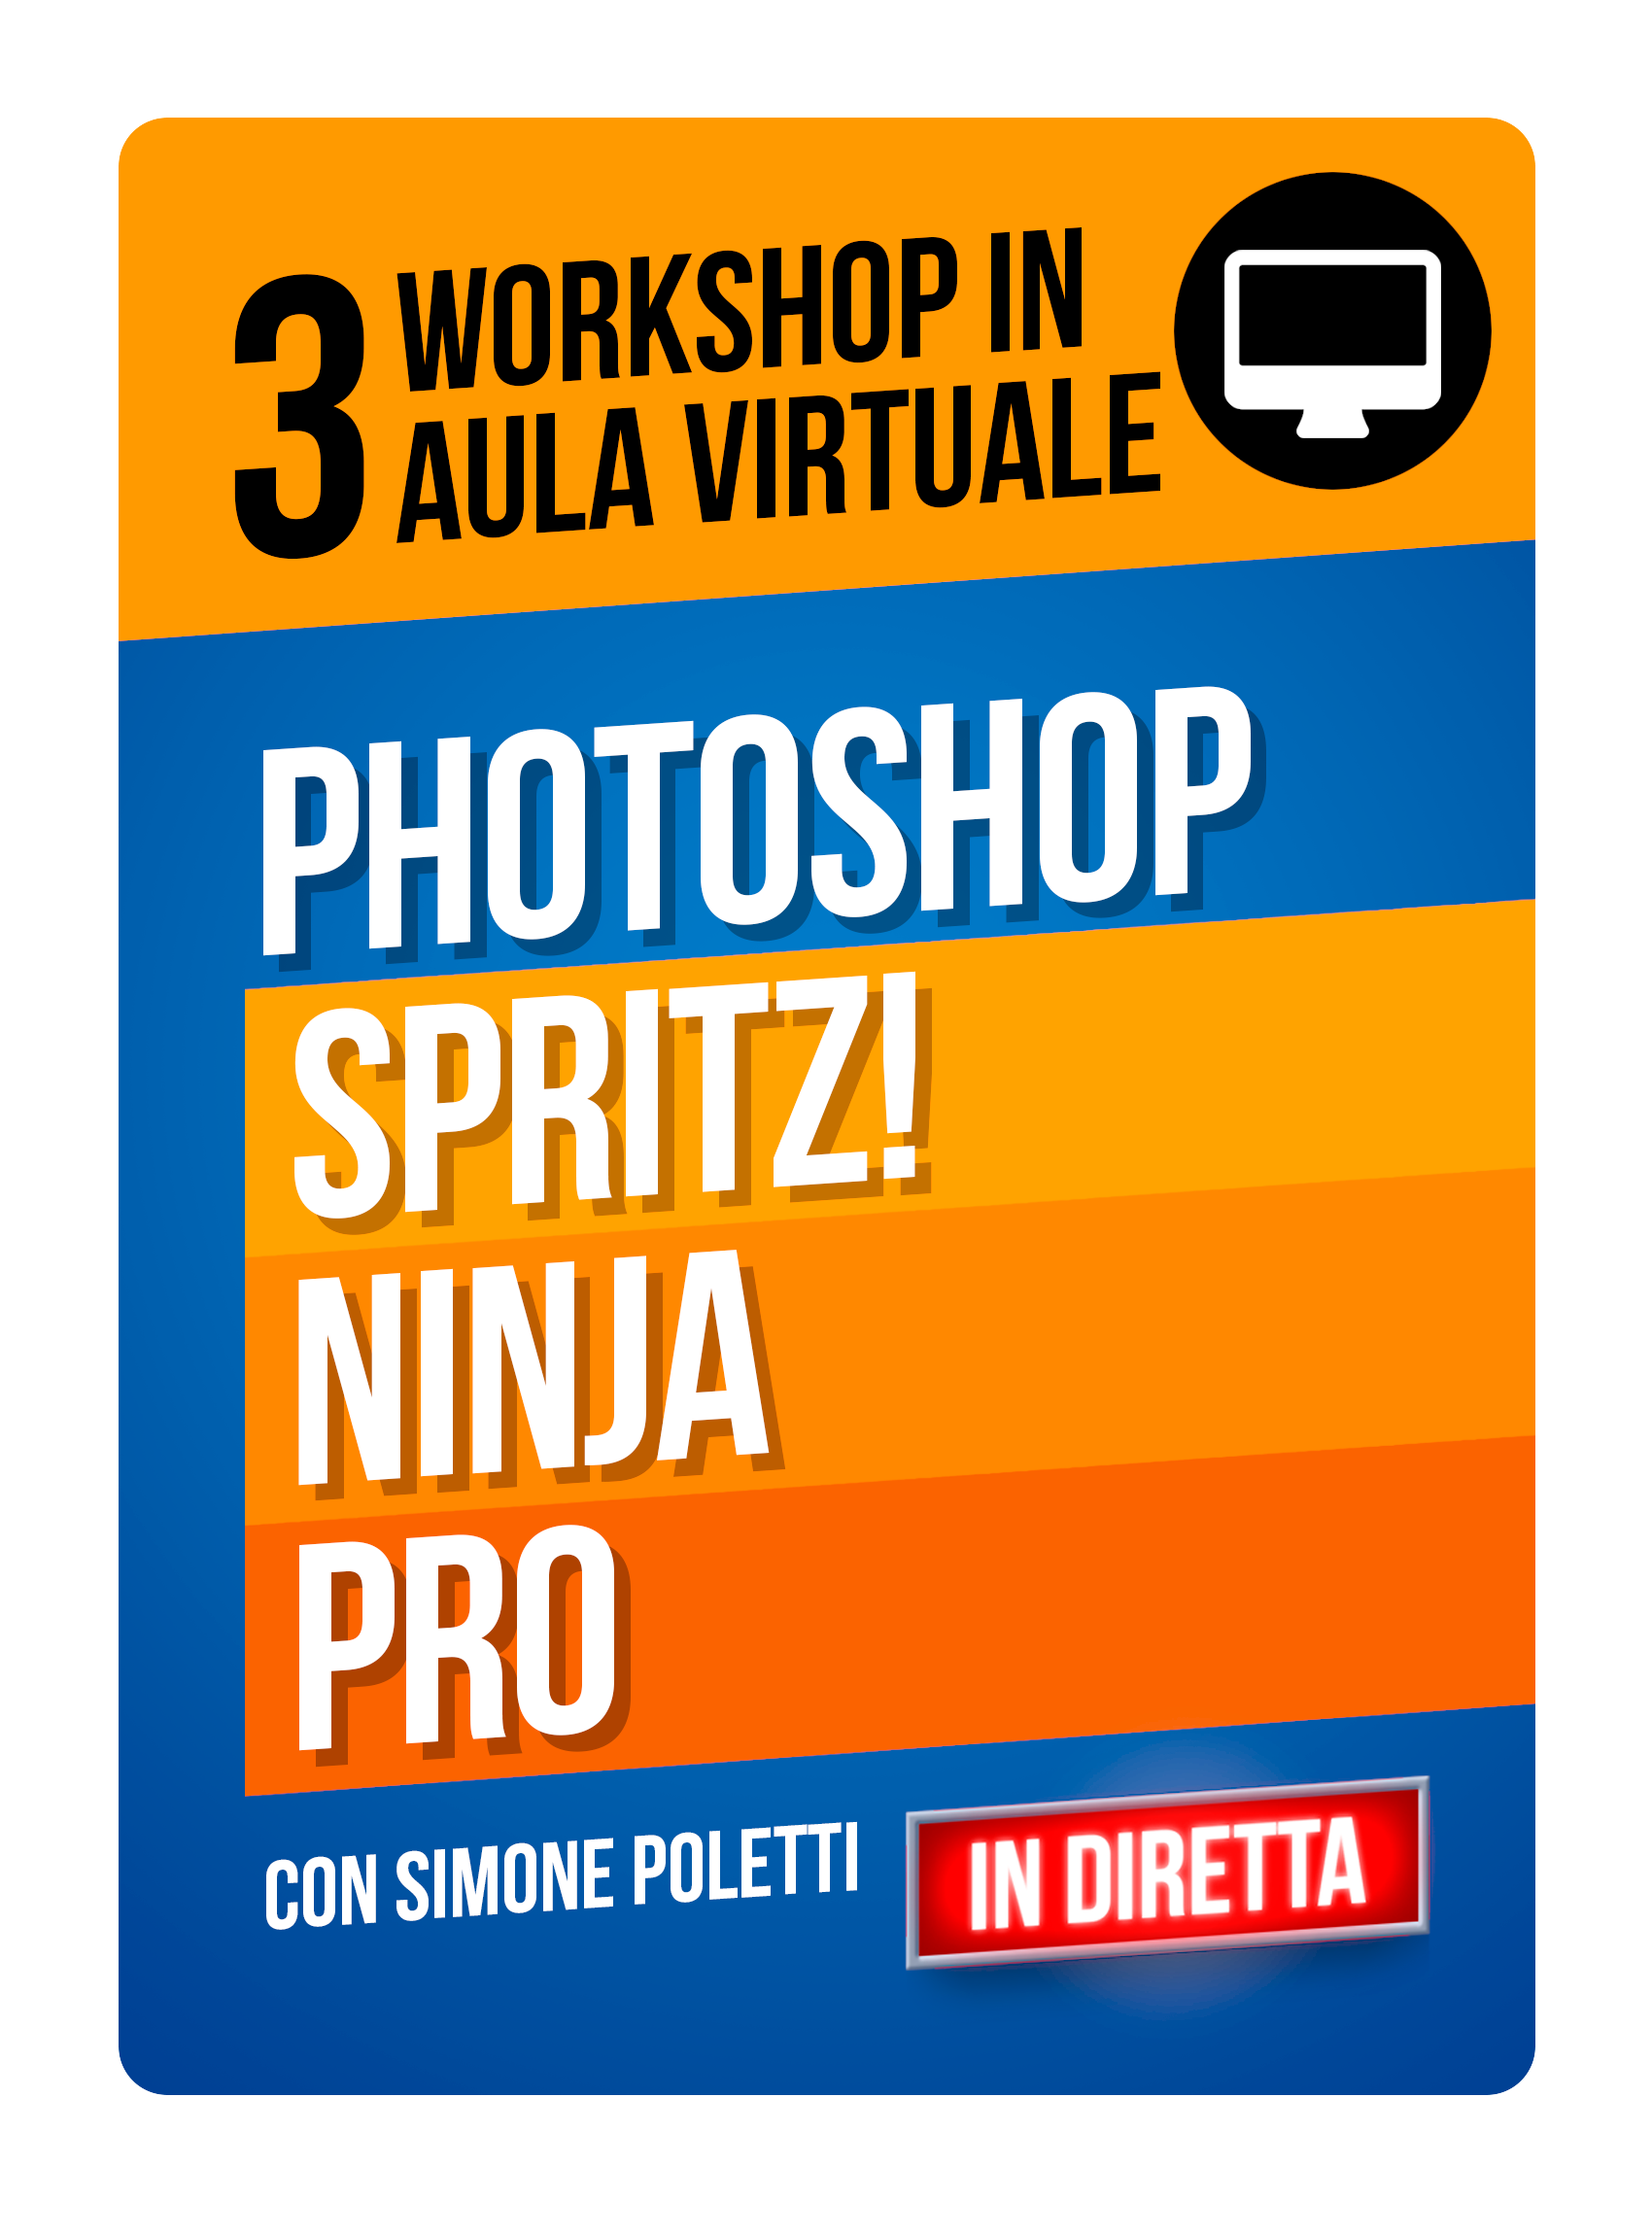 Percorso Photoshop! 3 workshop in aula virtuale